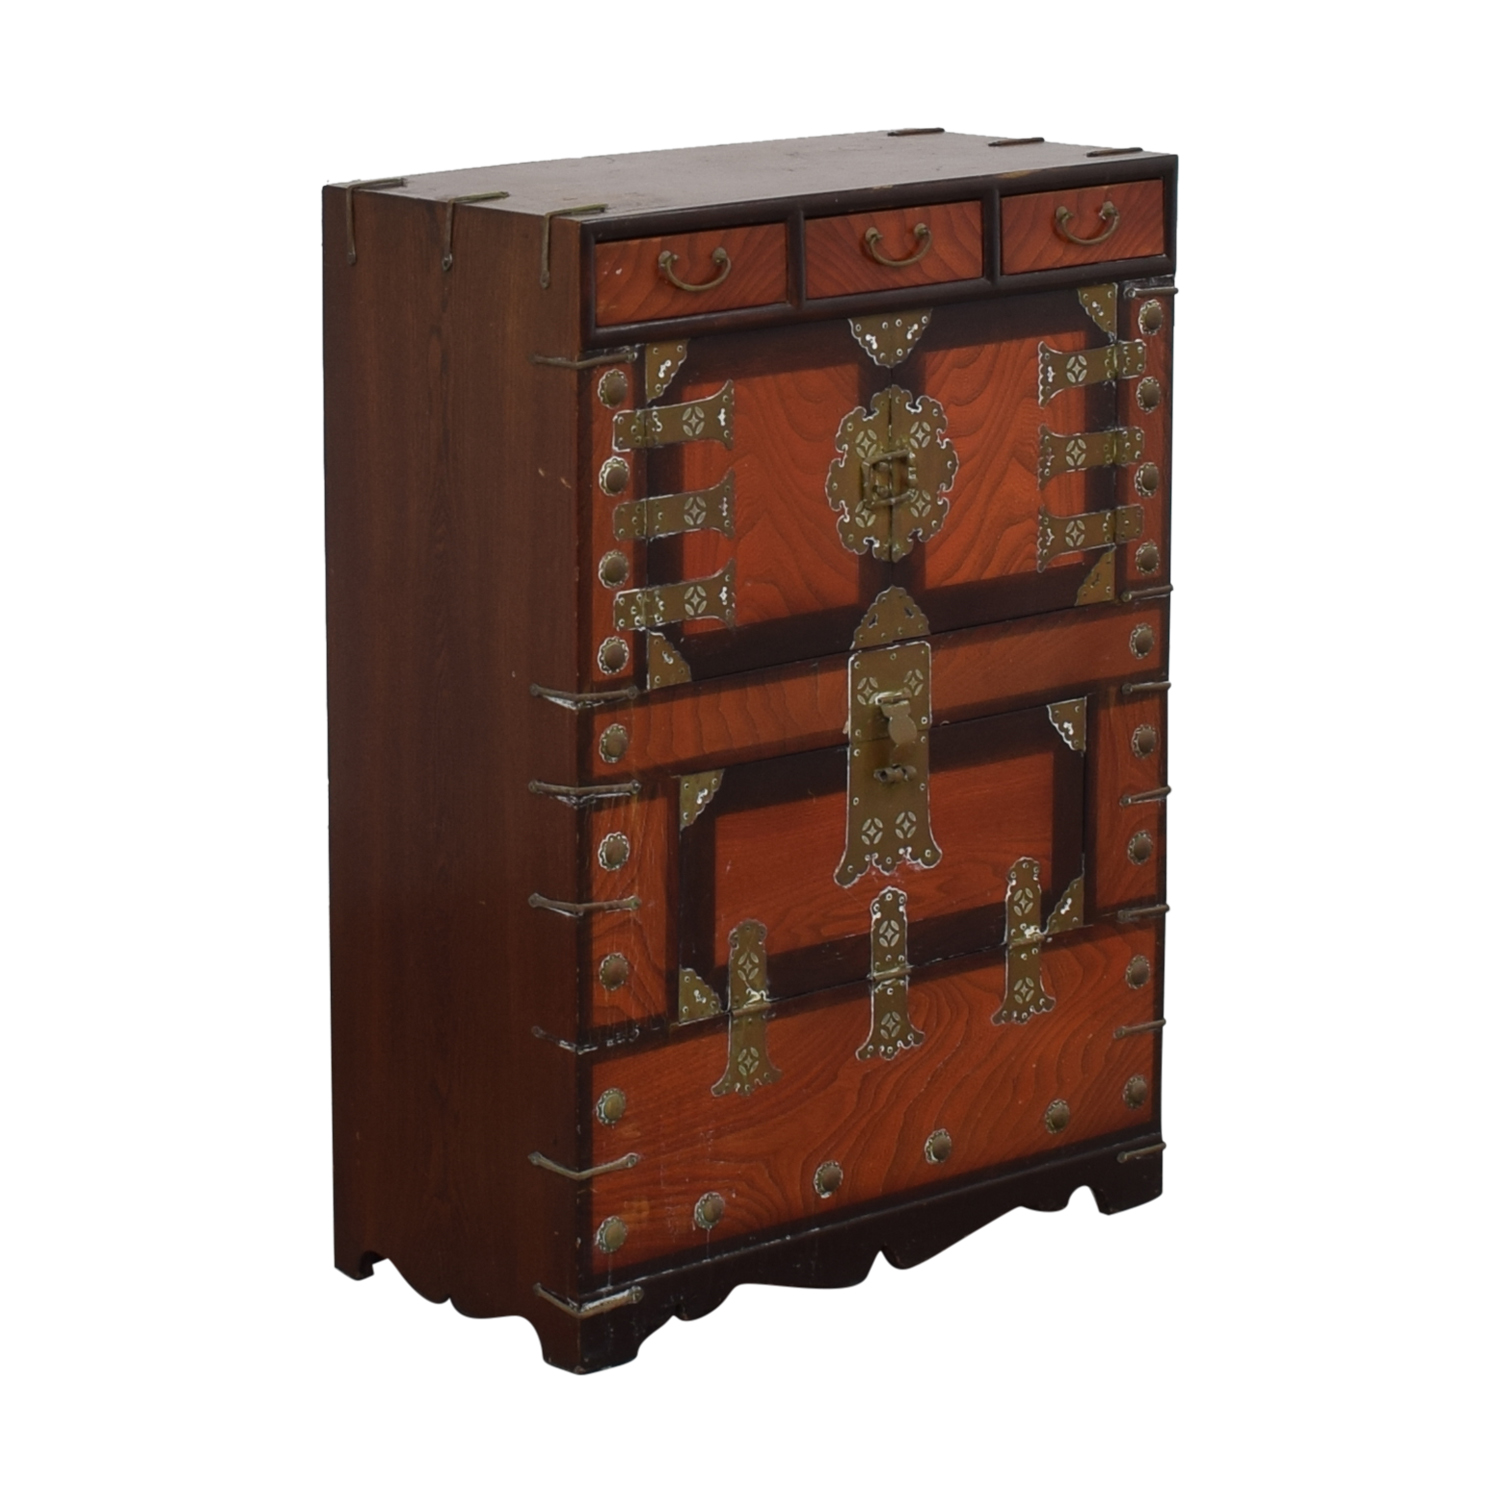 Three-Drawer Chinese Wood Chest used